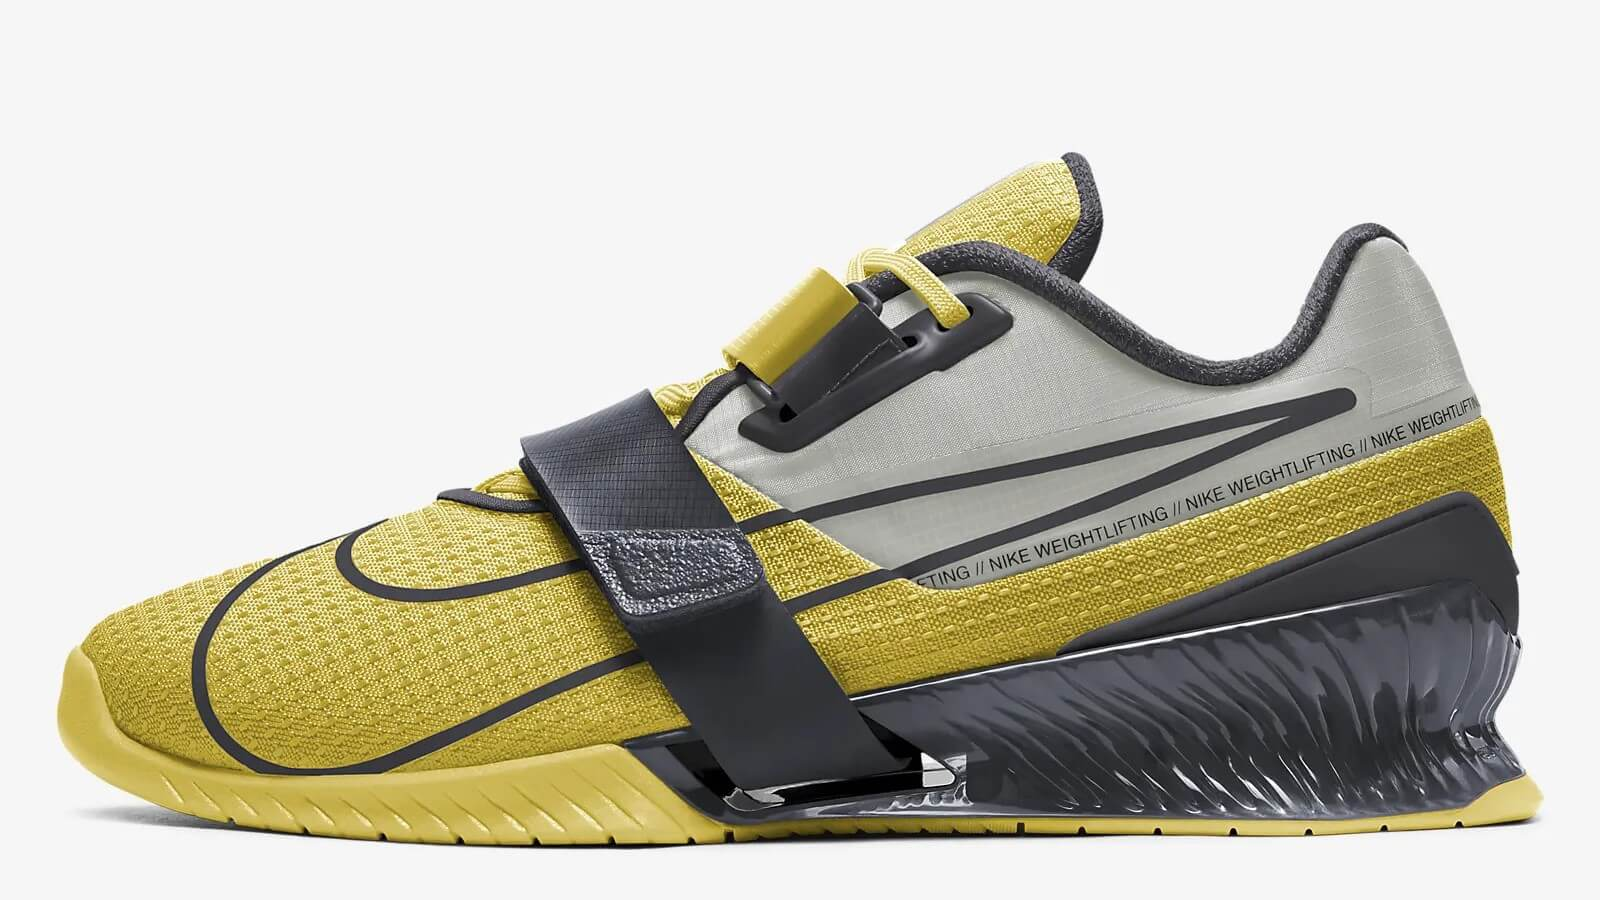 Nike Romaleos 4 with yellow and black colorway.